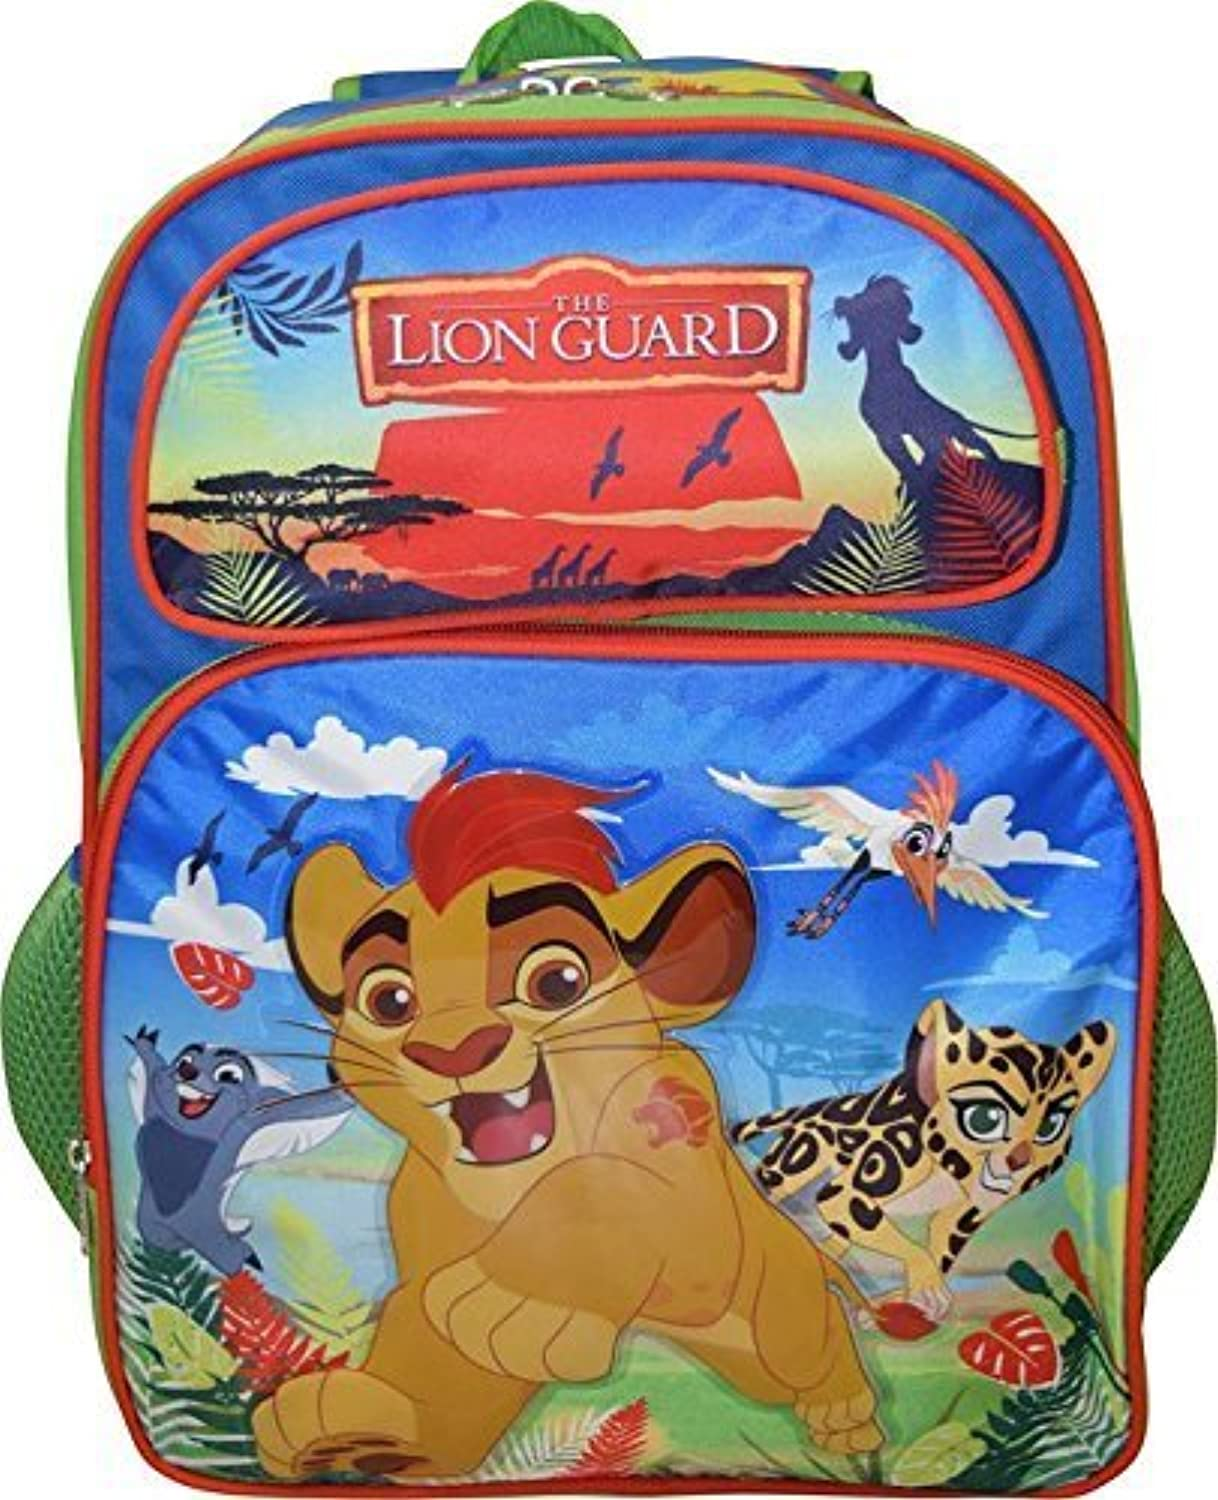 Leader Of The Lion Guard 12 Toddler School Backpack by Disney